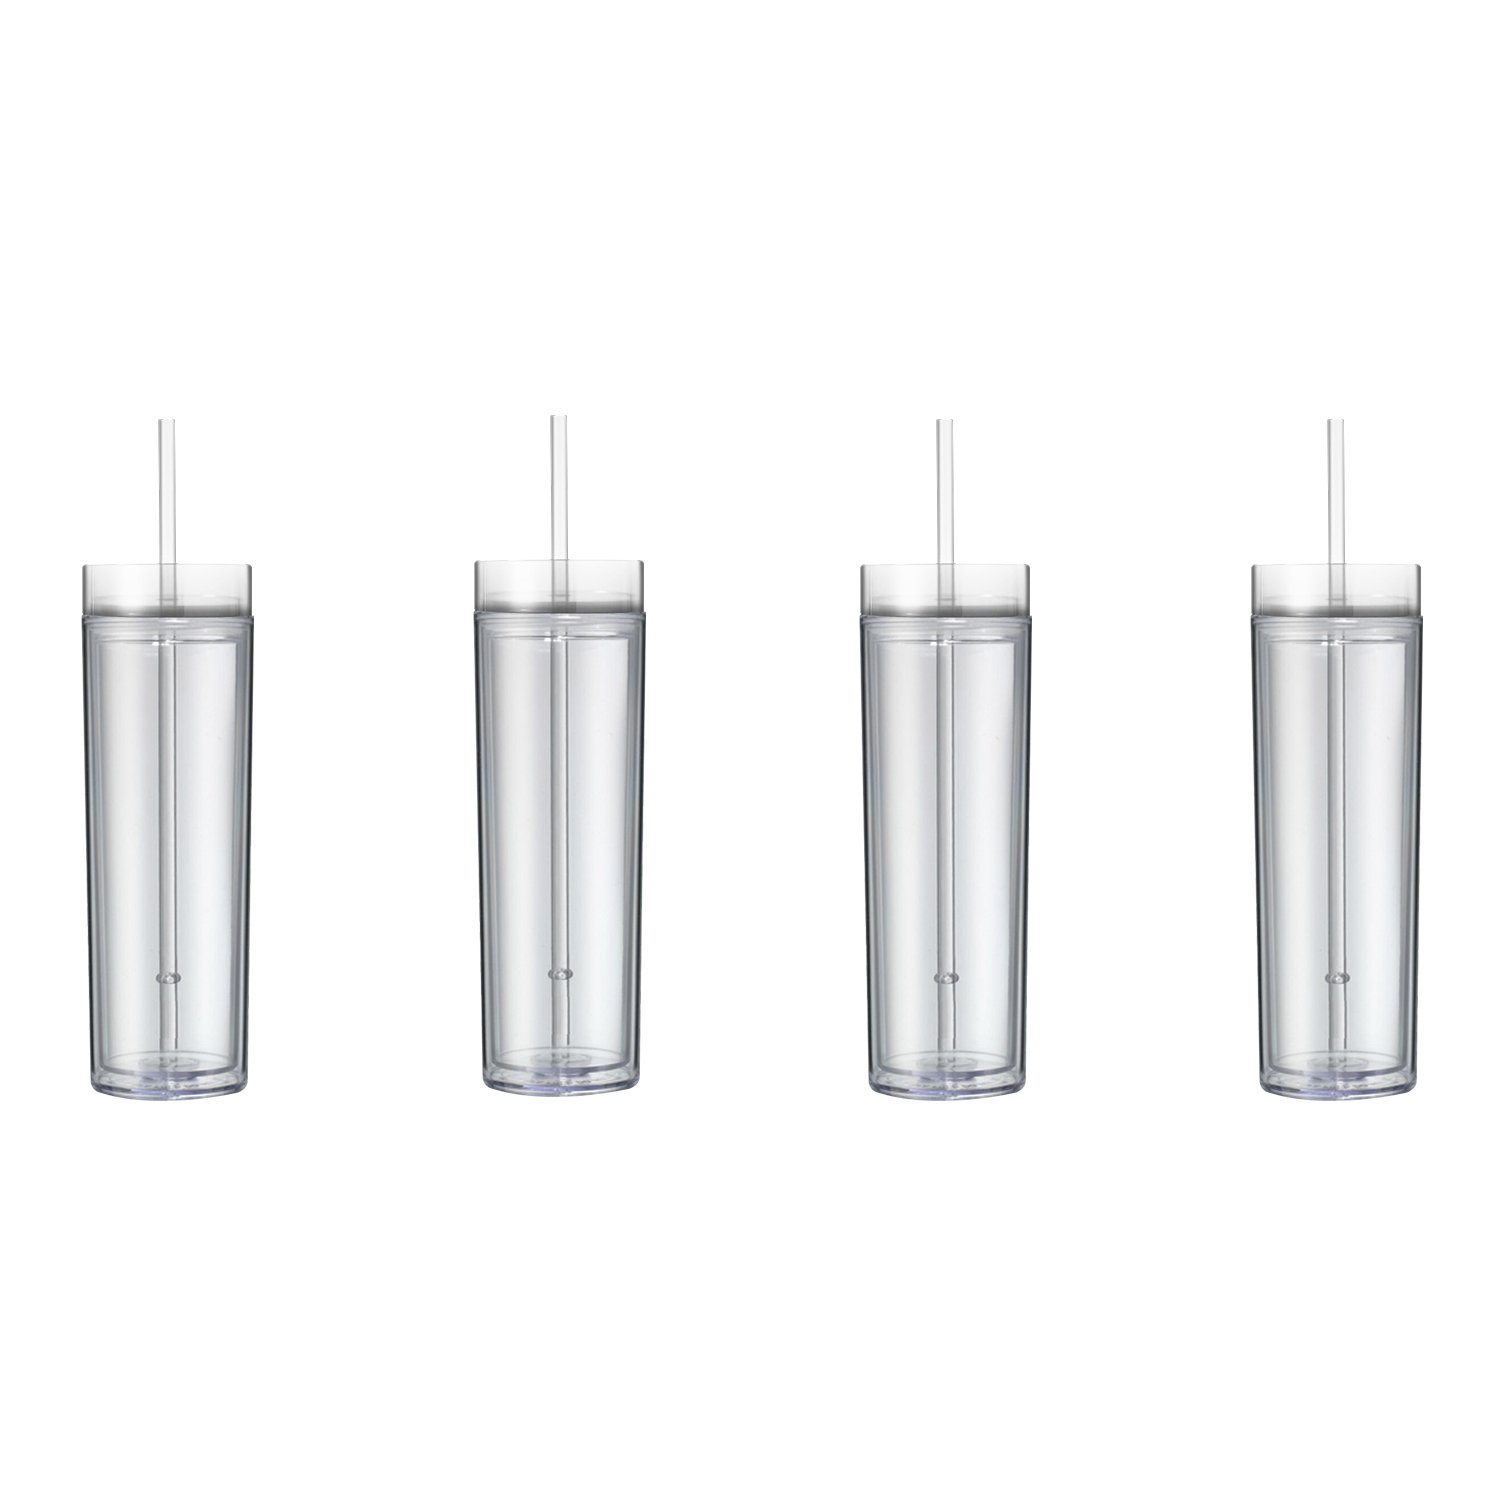 Maars Classic Insulated Skinny Tumblers 16 oz. | Double Wall Acrylic | Clear - 4 pack